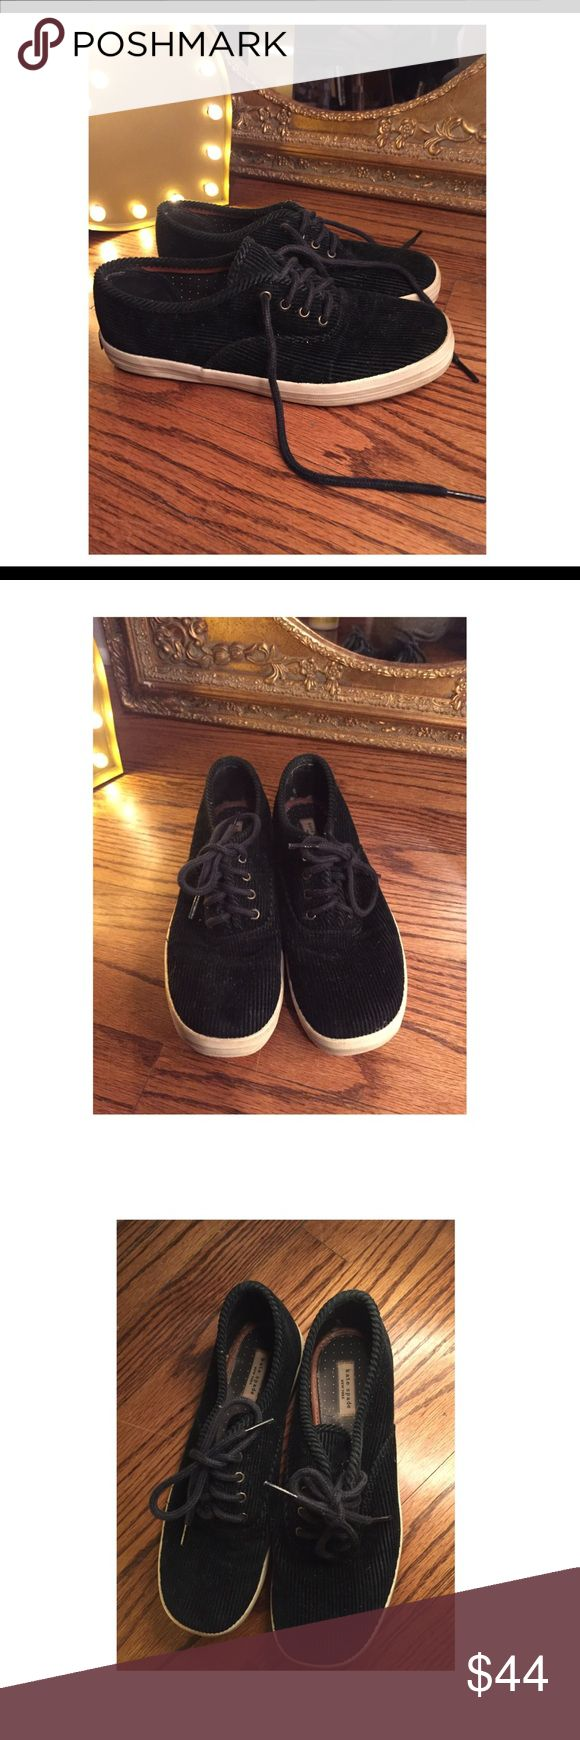 Kate Spade ♠️ New York Sneakers Kate Spade Black Lace up sneakers made of corduroy fabric and rubber sole. So Stylish and Cute✨ kate spade Shoes Sneakers